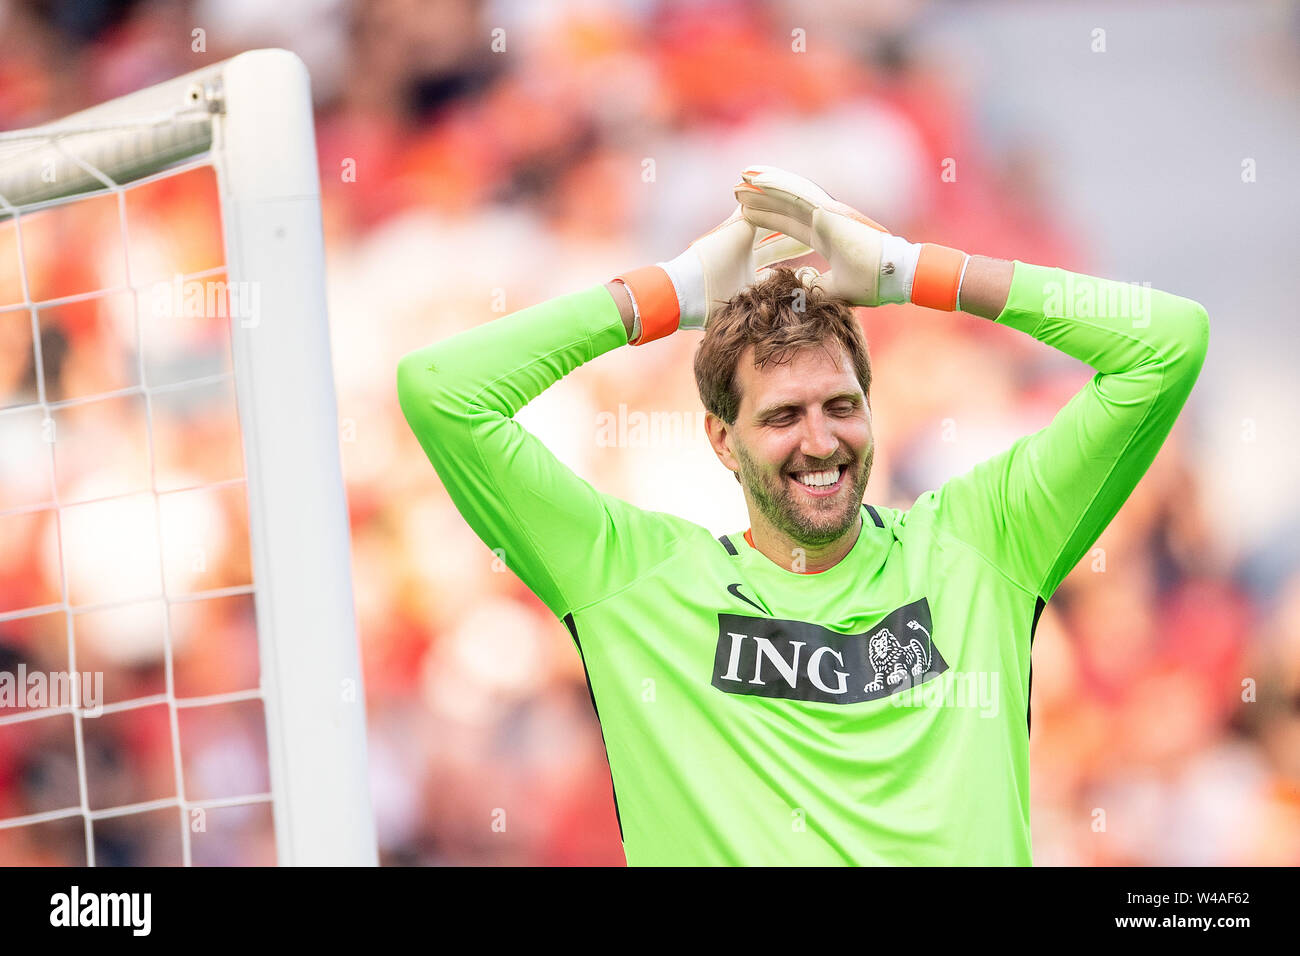 Leverkusen, Germany. 21st July, 2019. Soccer: Benefit soccer game 'Champions for Charity' in the BayArena. Former basketball player Dirk Nowitzki reacts after scoring a goal. Credit: Marius Becker/dpa/Alamy Live News - Stock Image